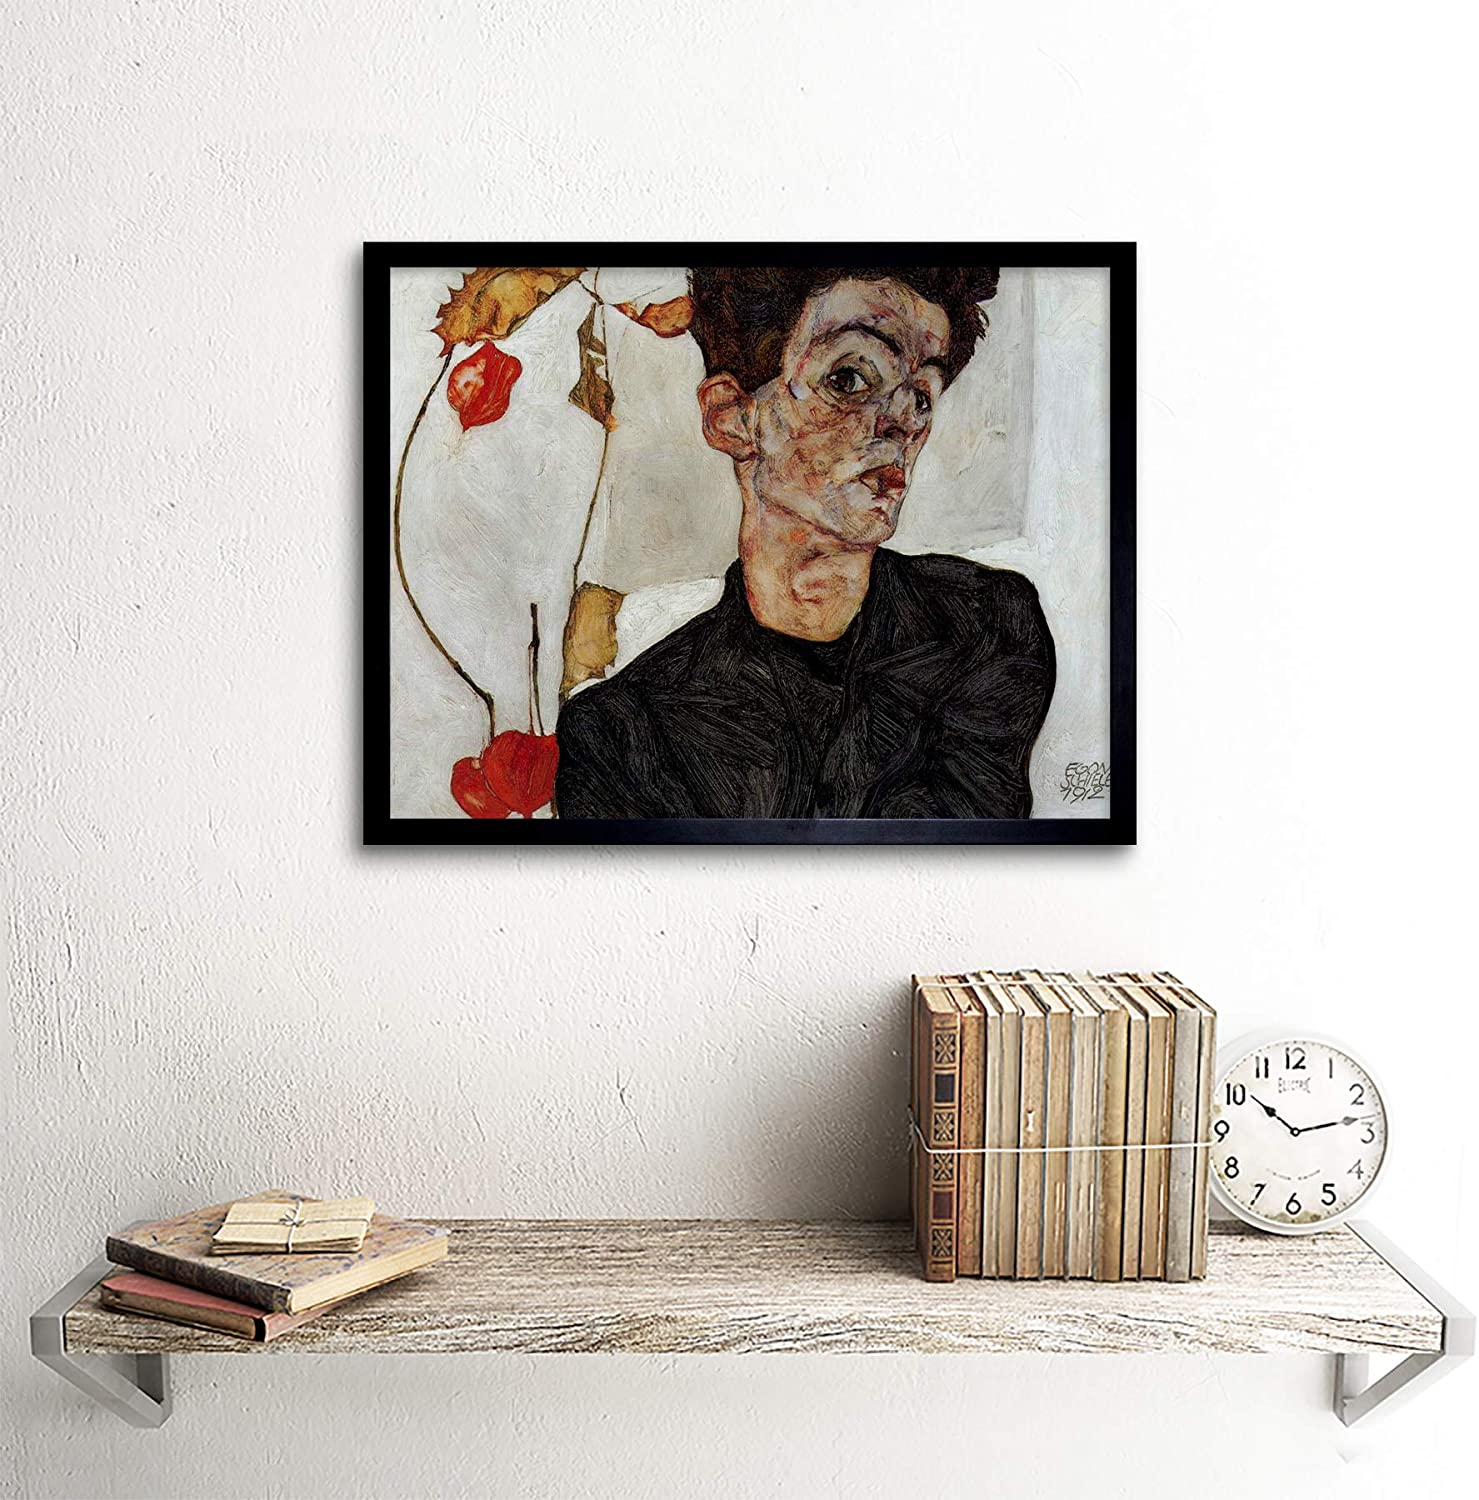 EGON SCHIELE SELF PORTRAIT WITH LOWERED HEAD OLD MASTER PAINTING PRINT 834OMLV